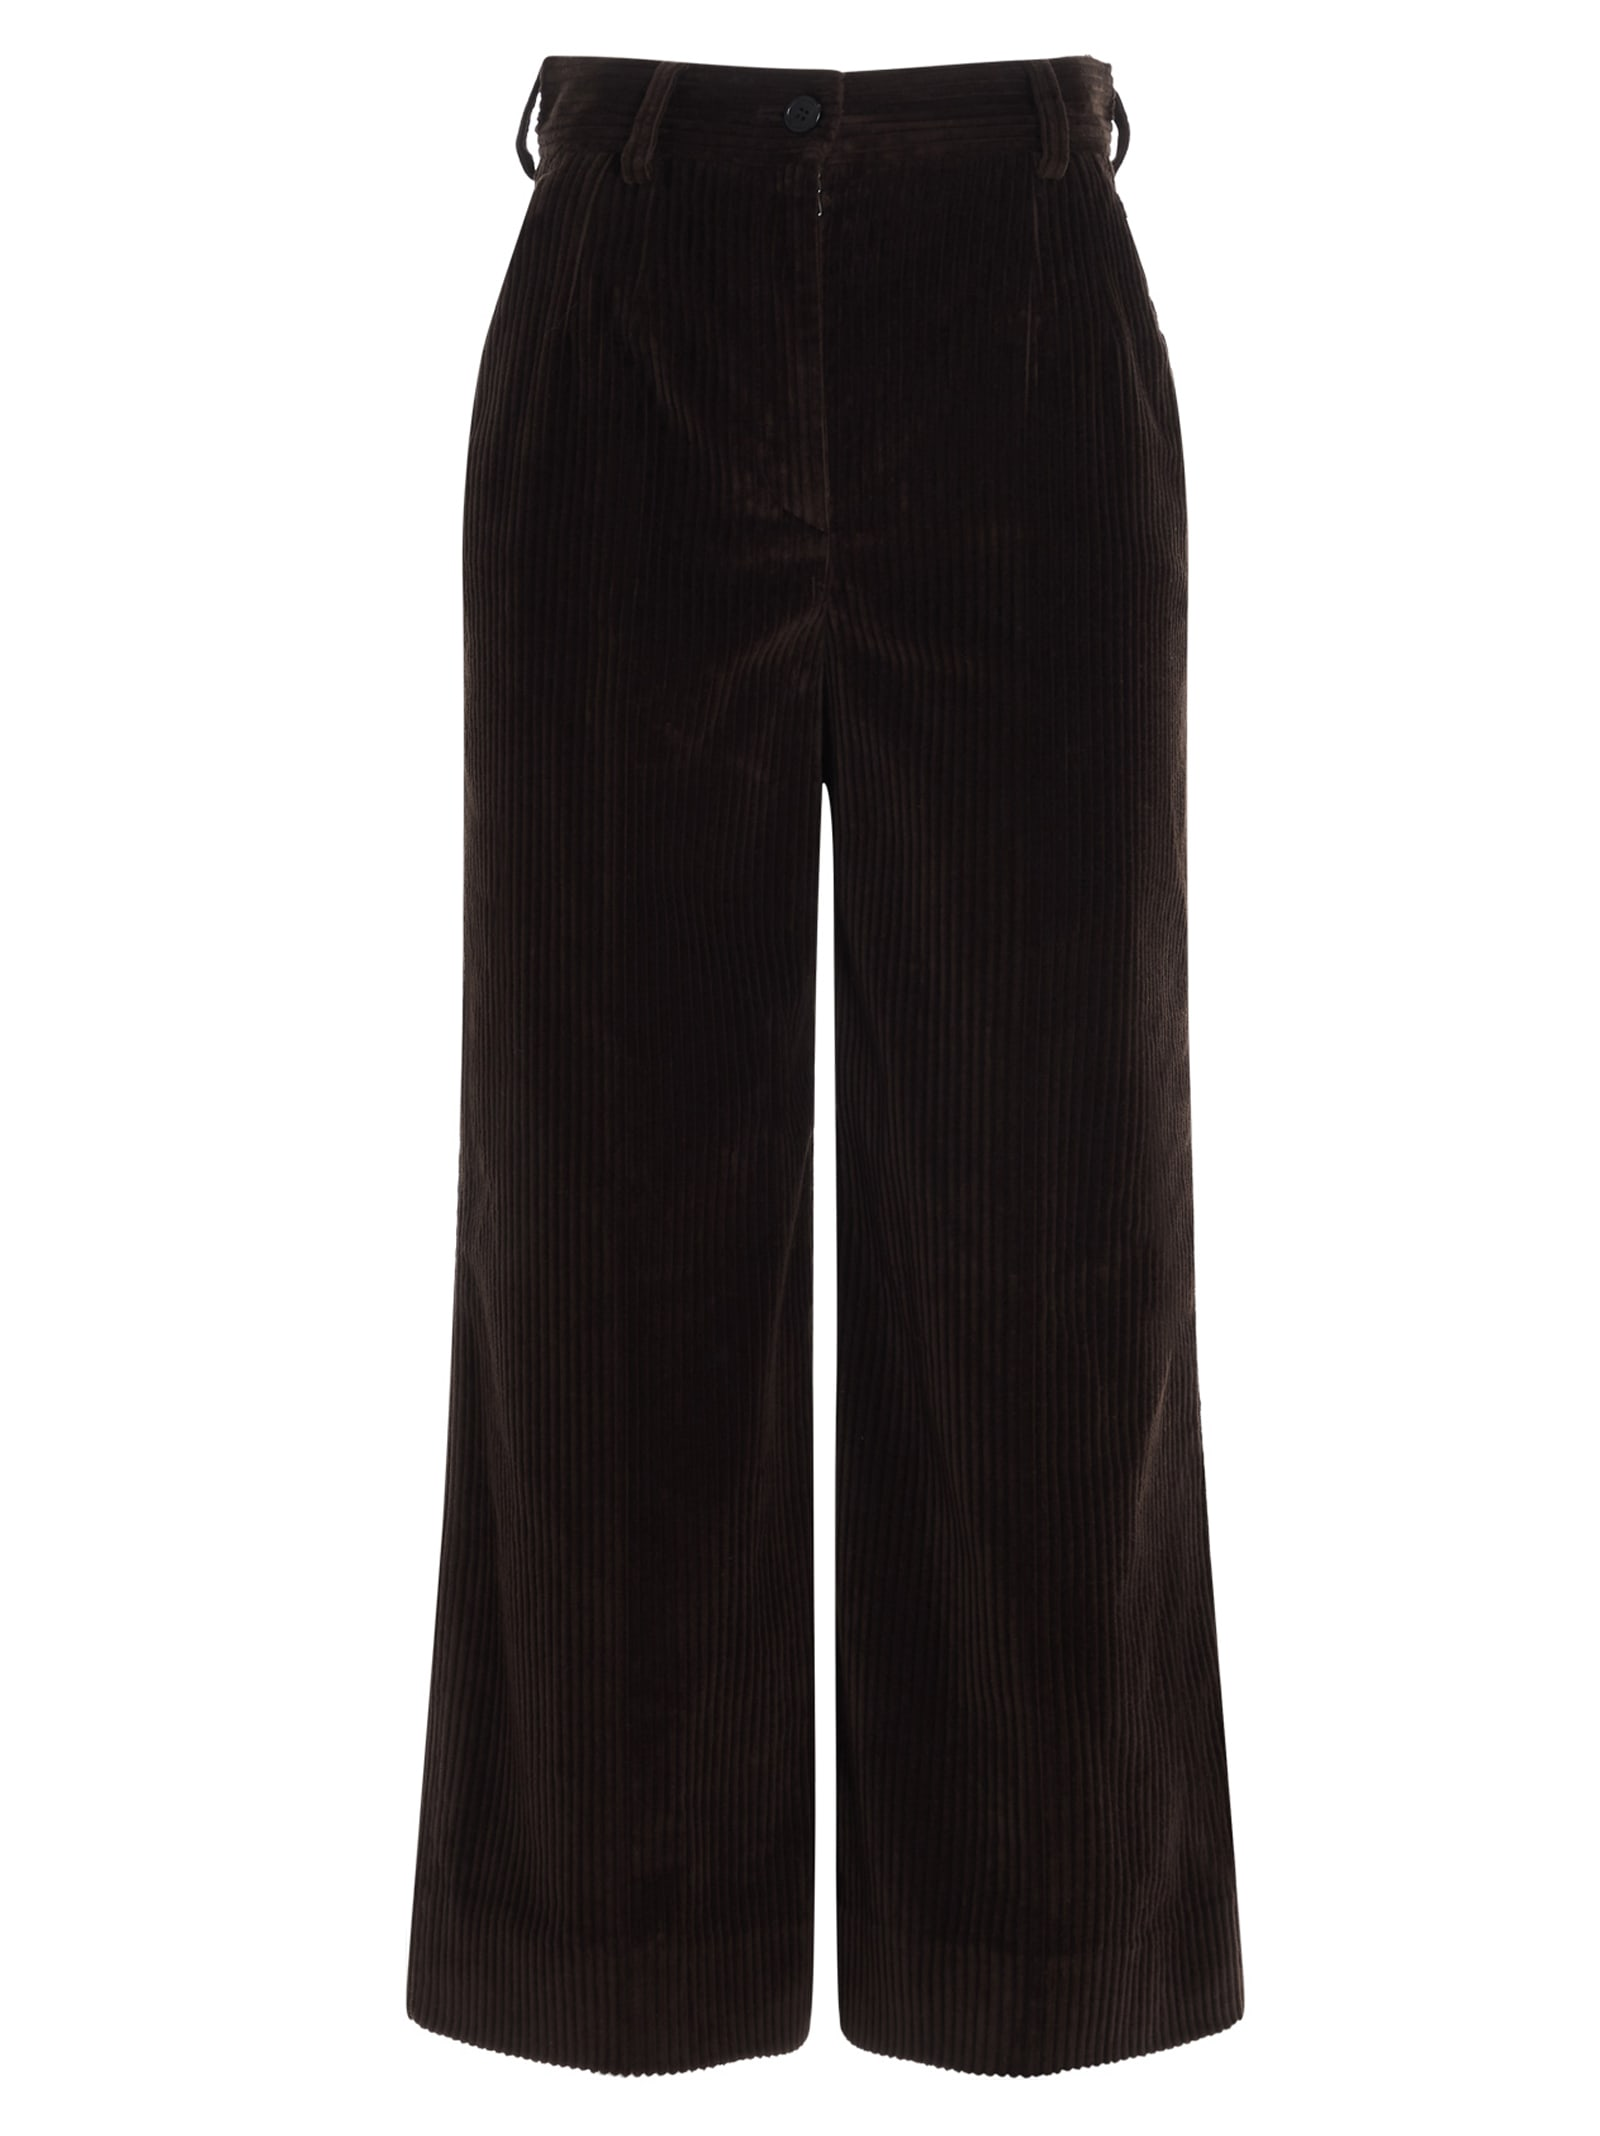 Dolce & Gabbana Pants In Brown